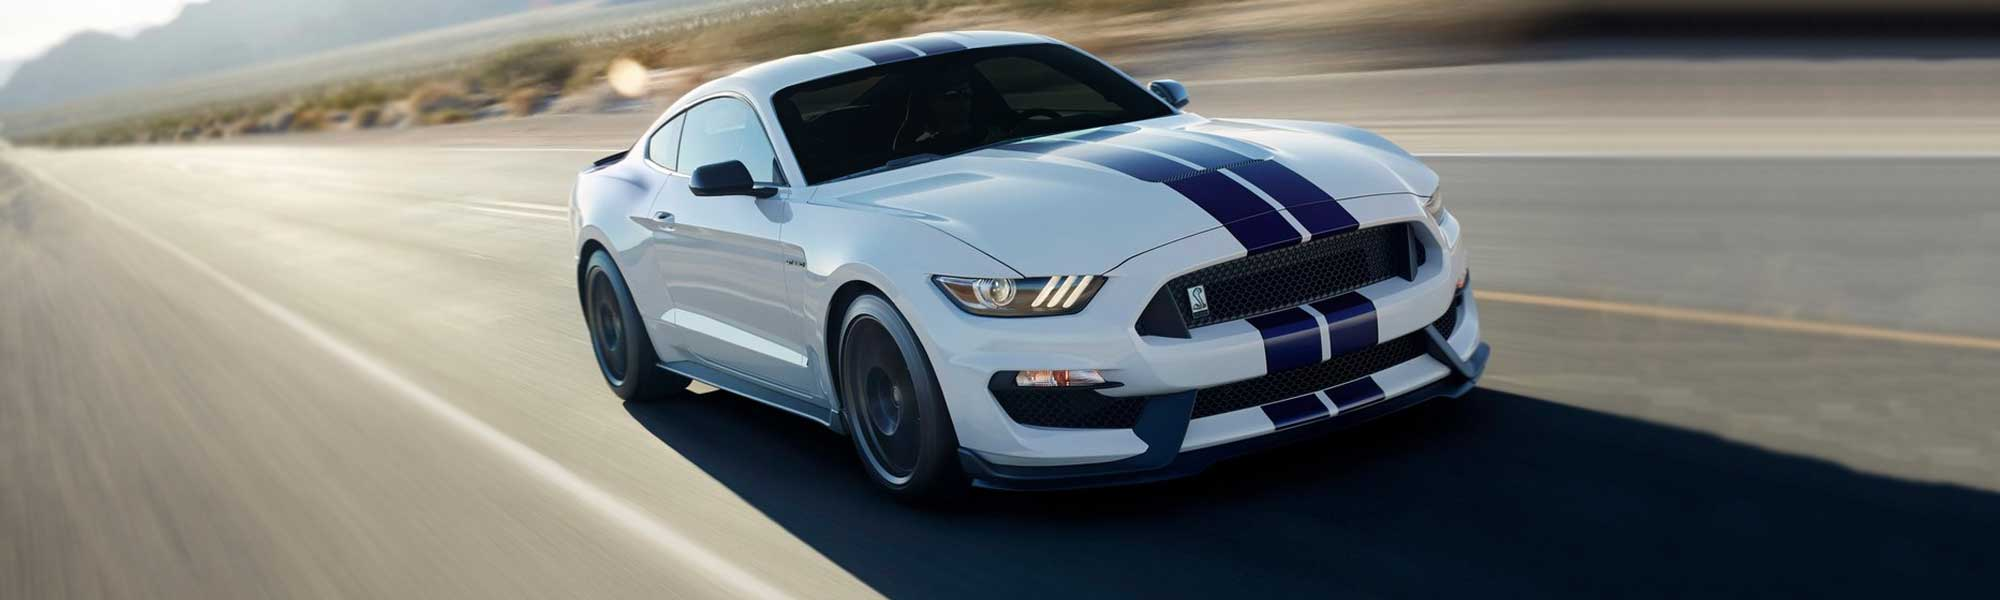 Best Deal Auto Sales - Used Cars - Fort Wayne IN Dealer